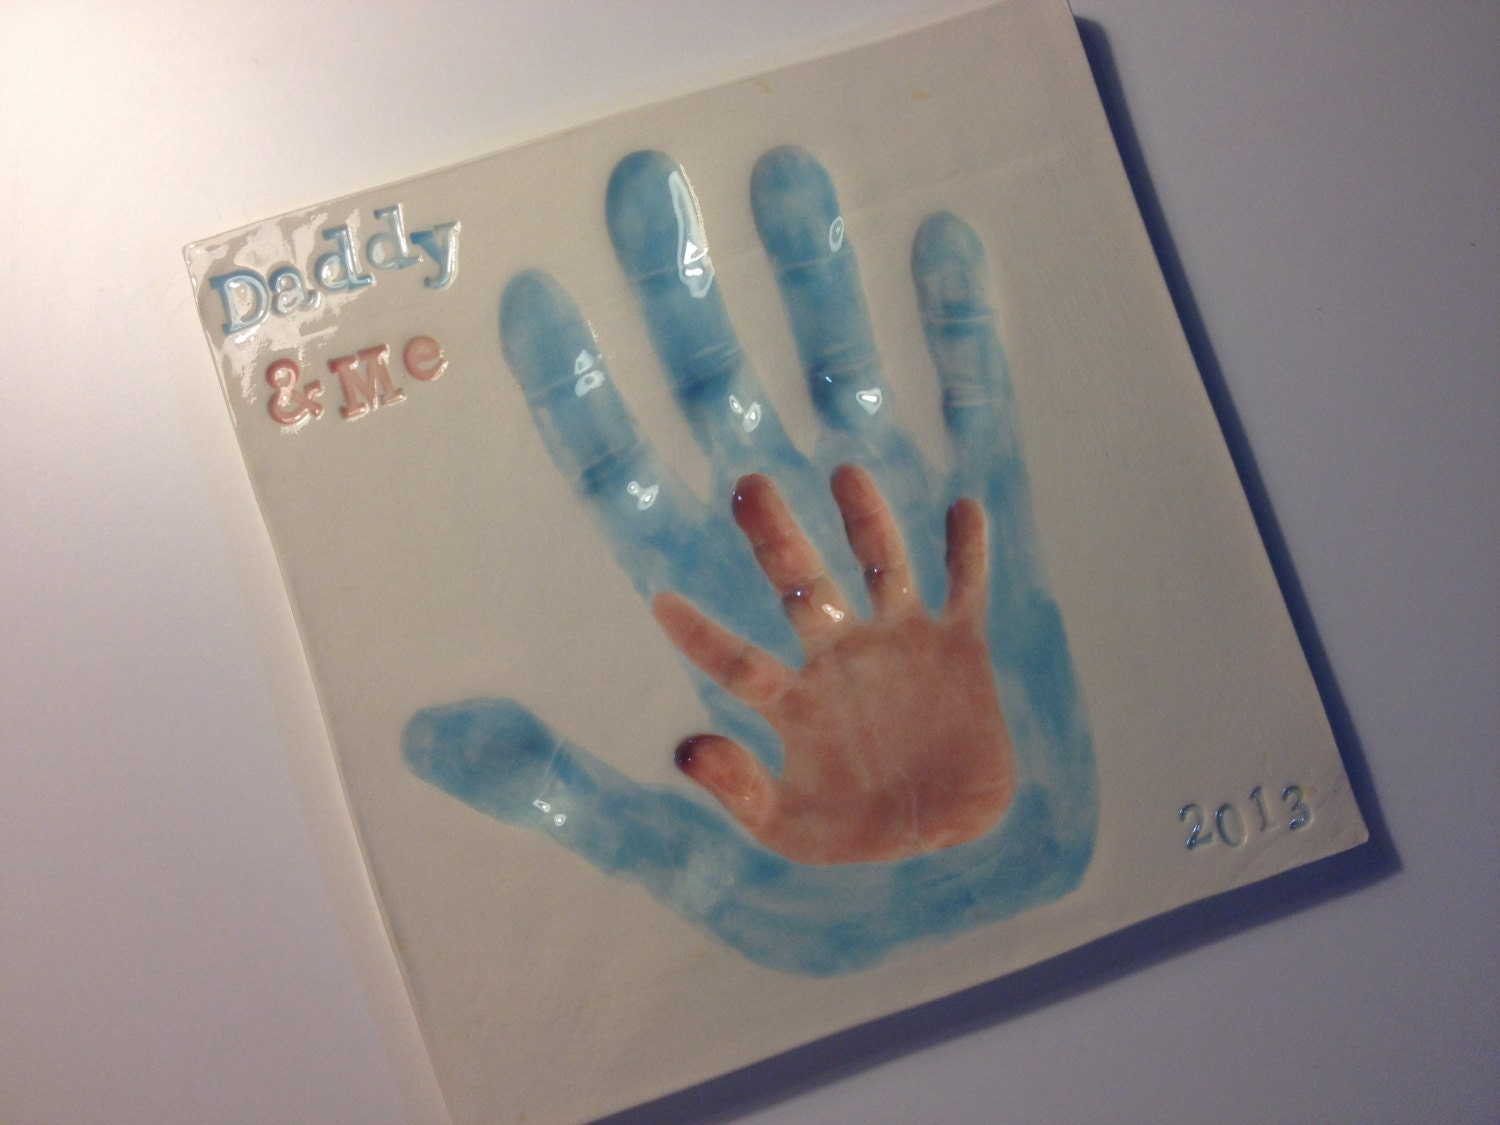 Daddy & Me Handprint Wall Art - Customized Ceramic Keepsake Clay Wall Tile Fathers Day Gift